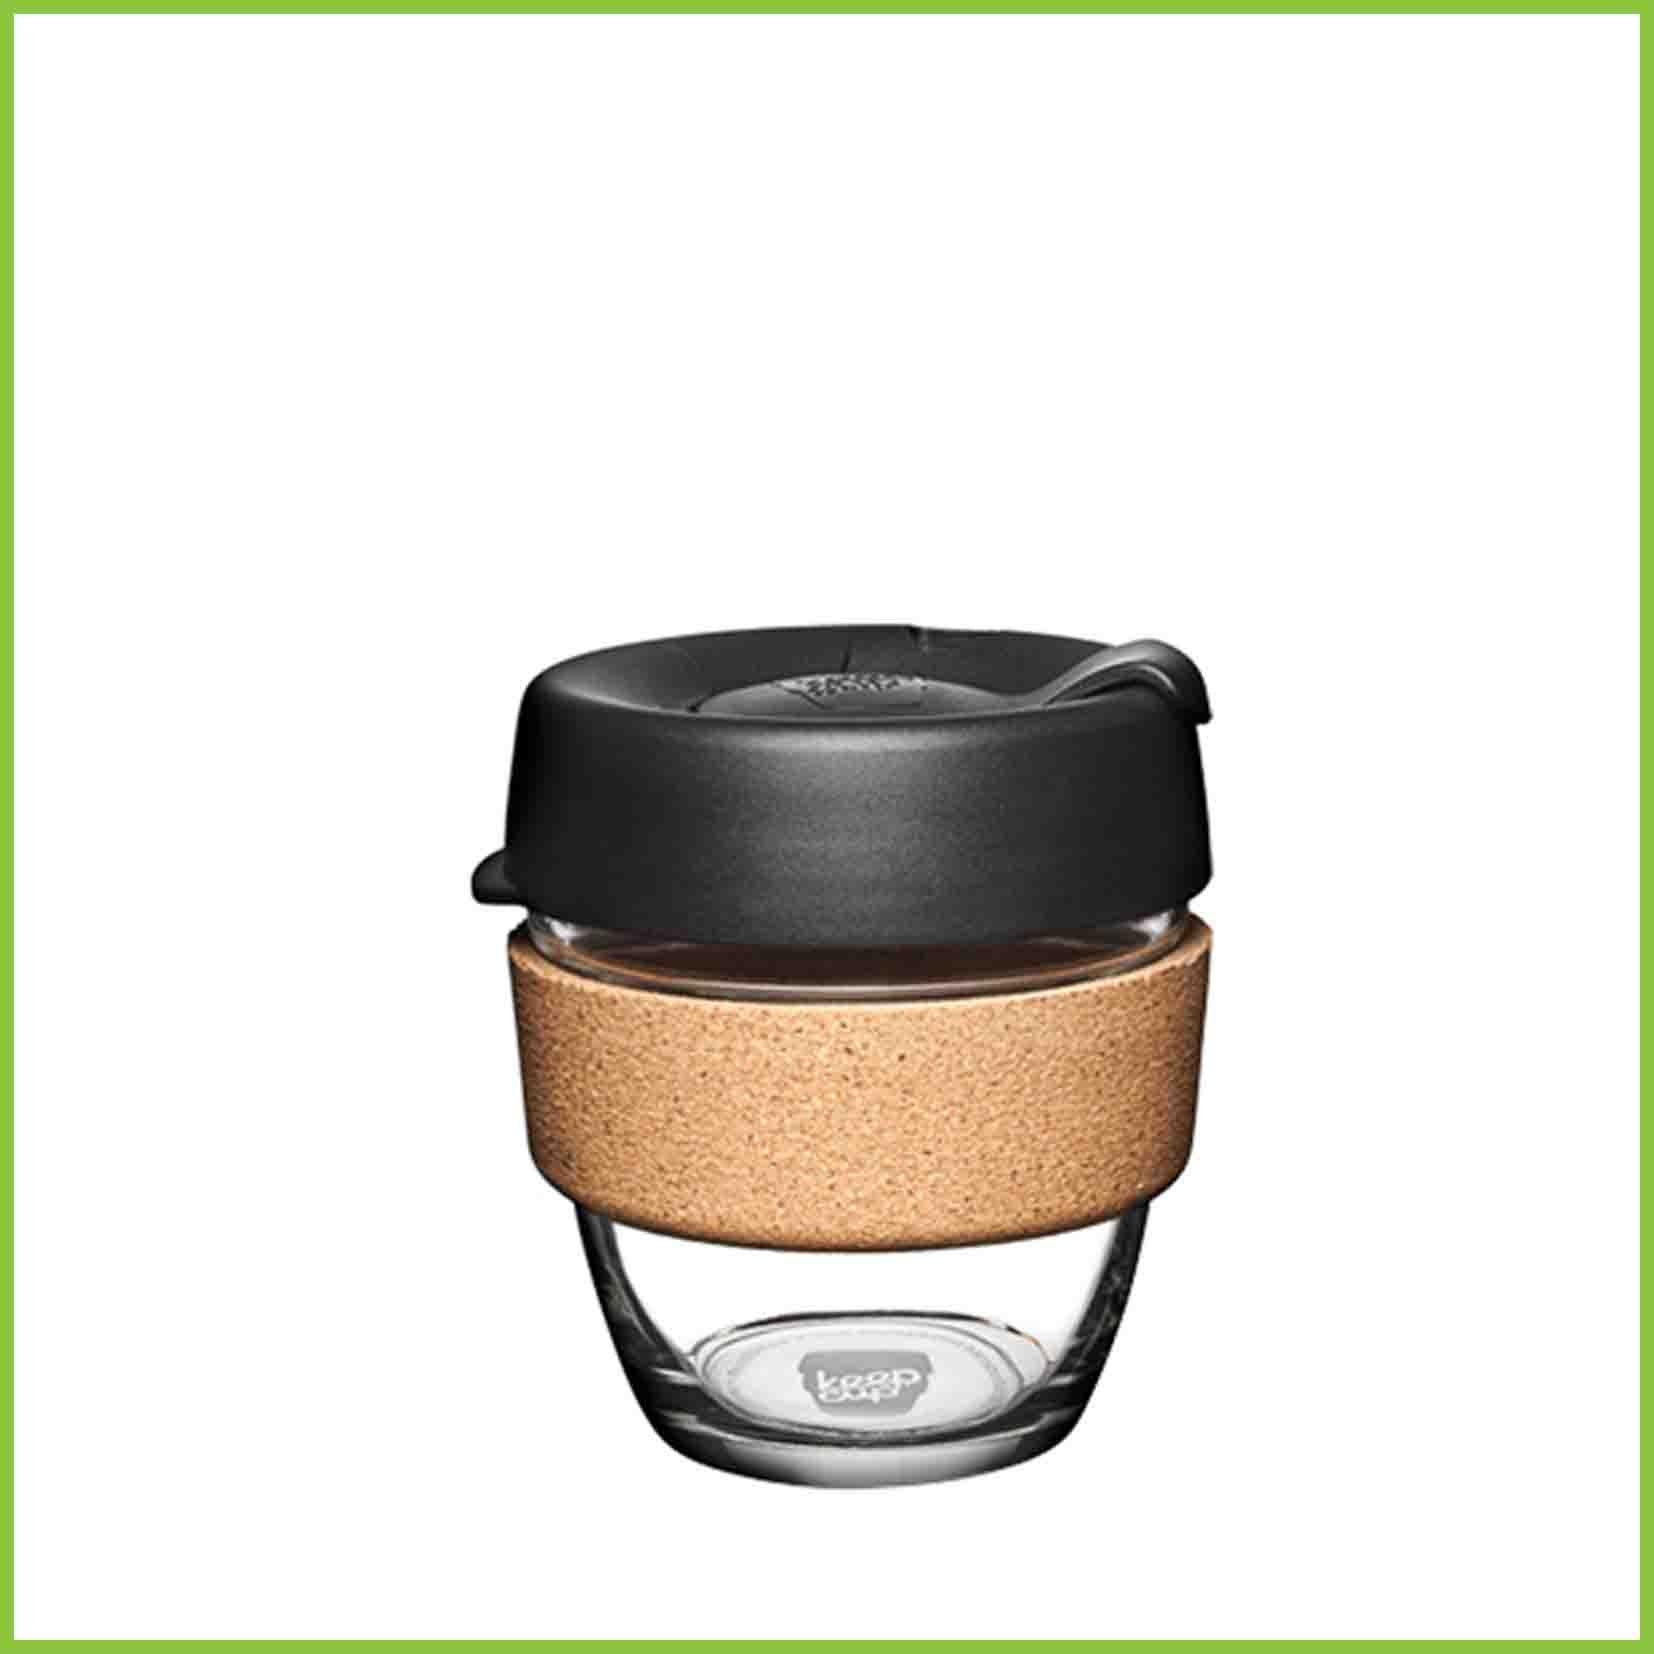 227ml reusable glass cup from Keepcup with a black lid and a cork band.